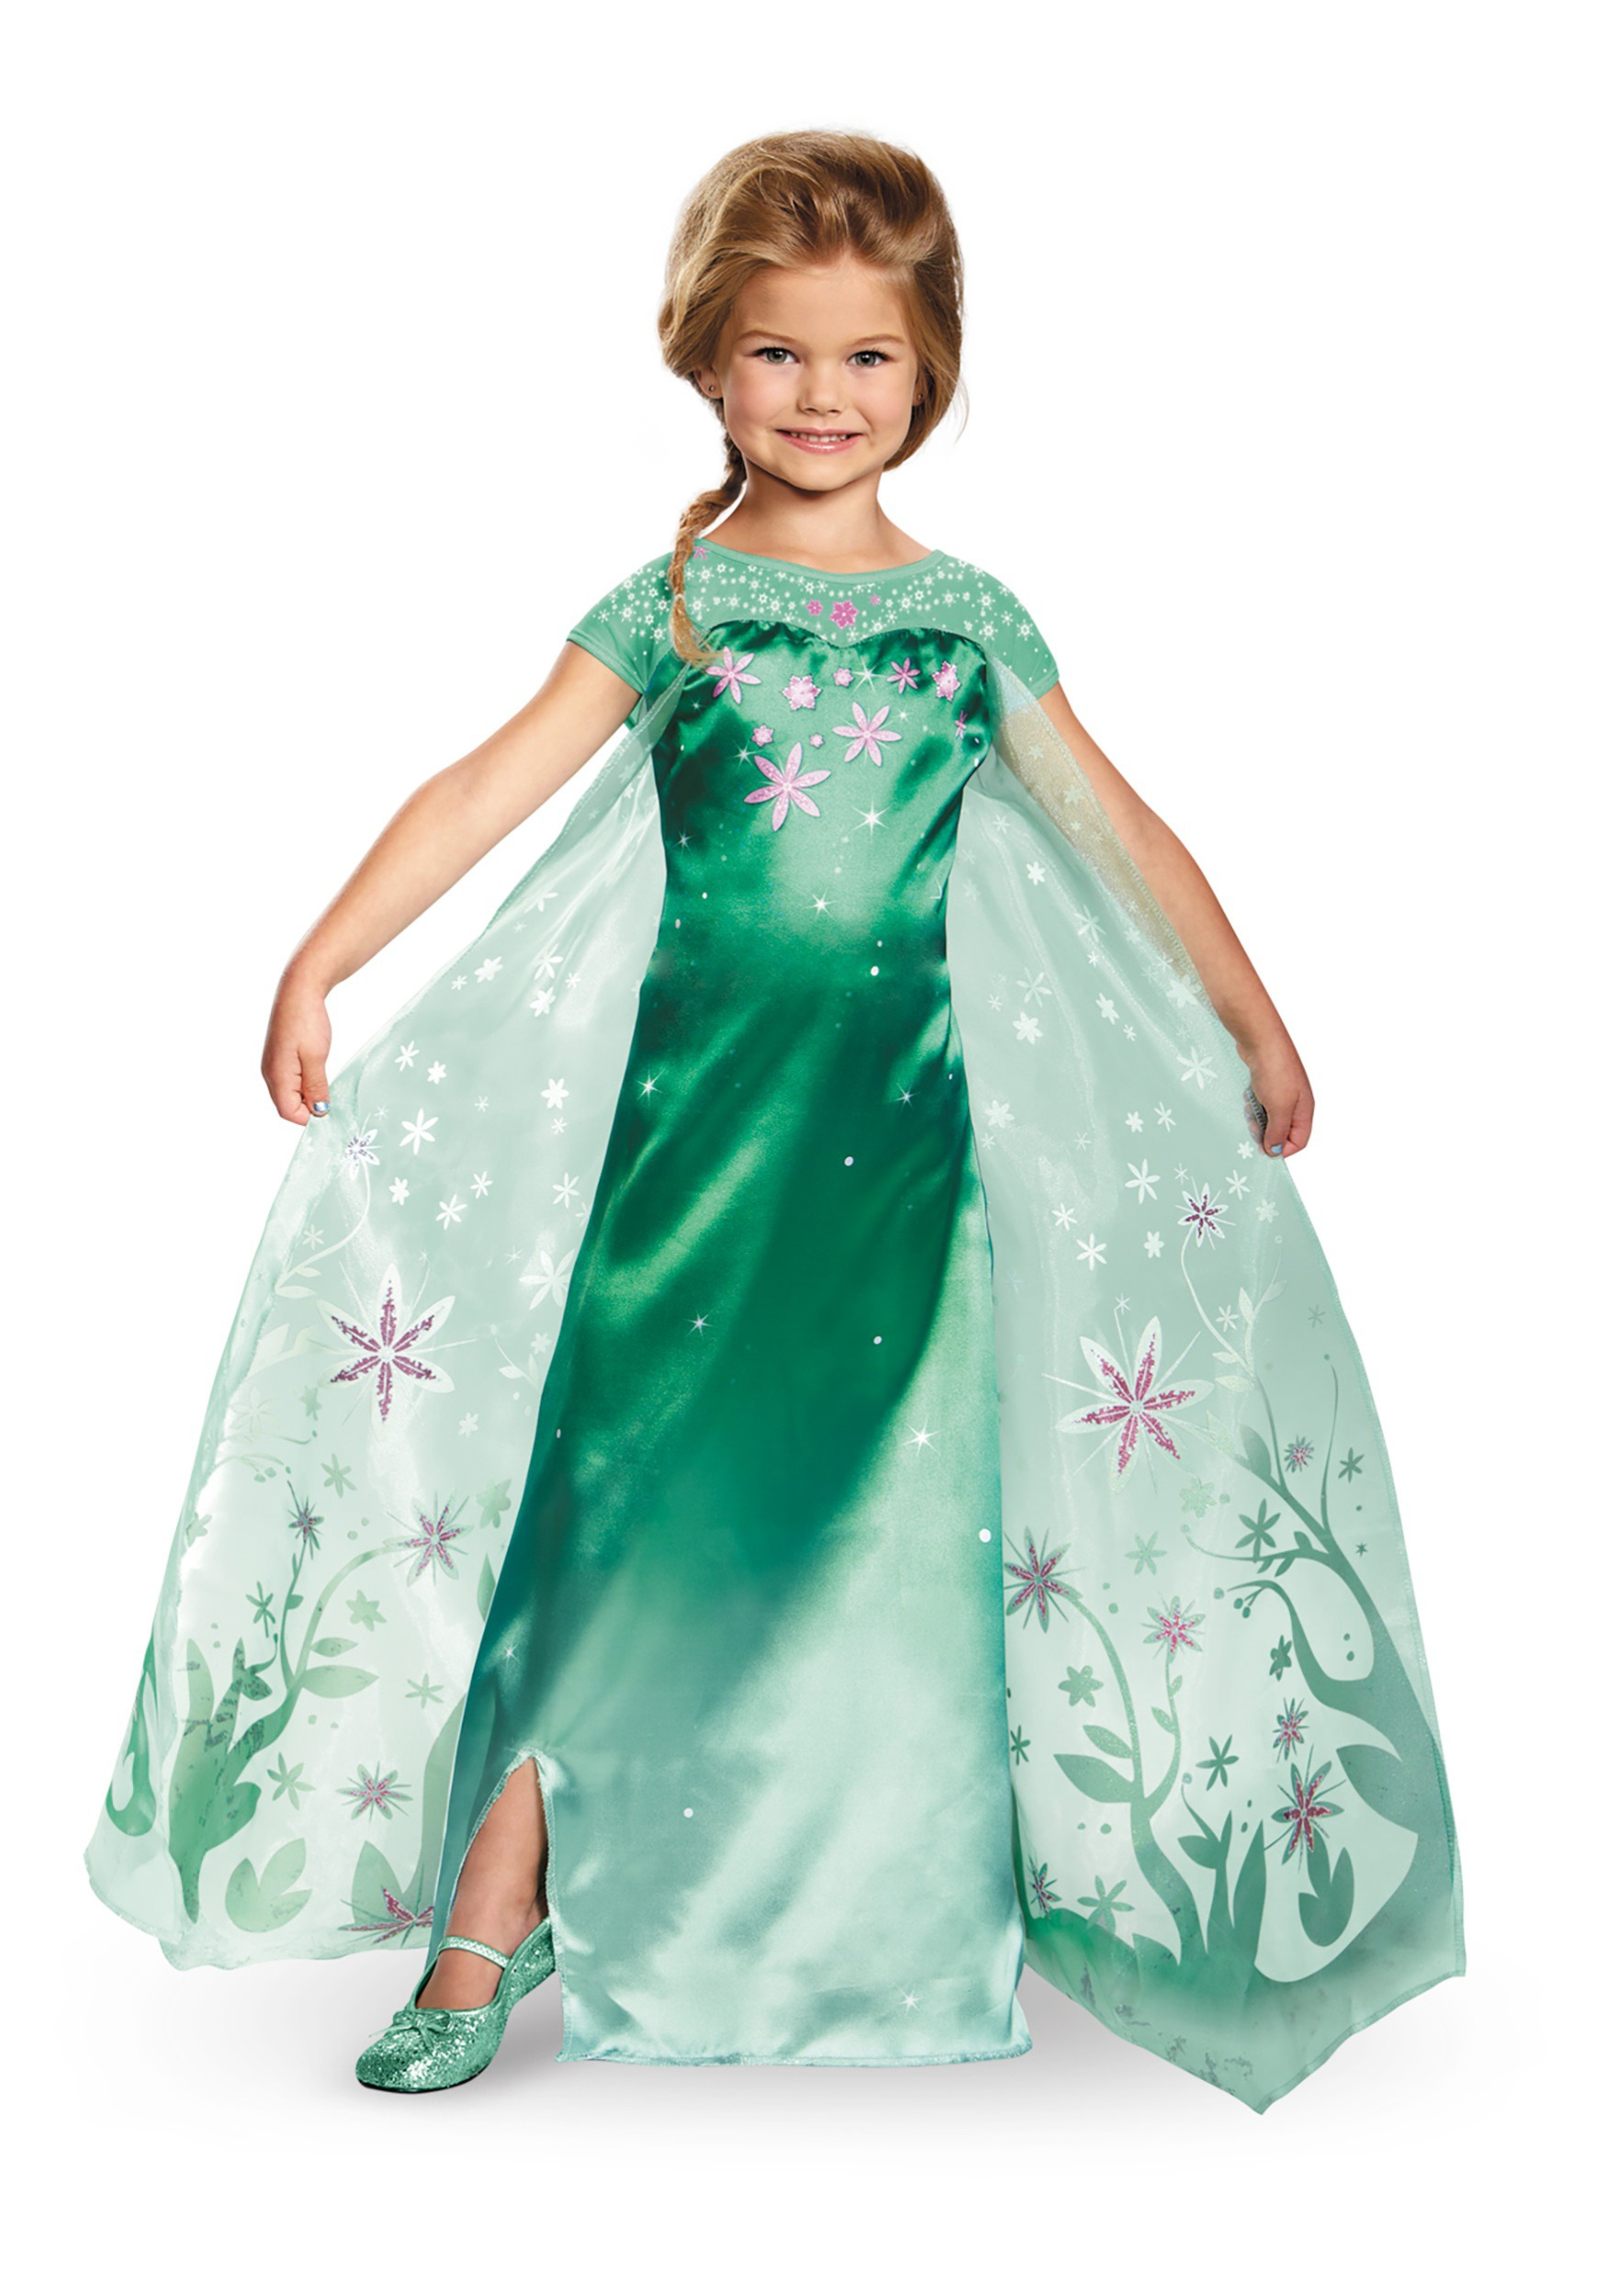 Frozen fever pictures of dresses